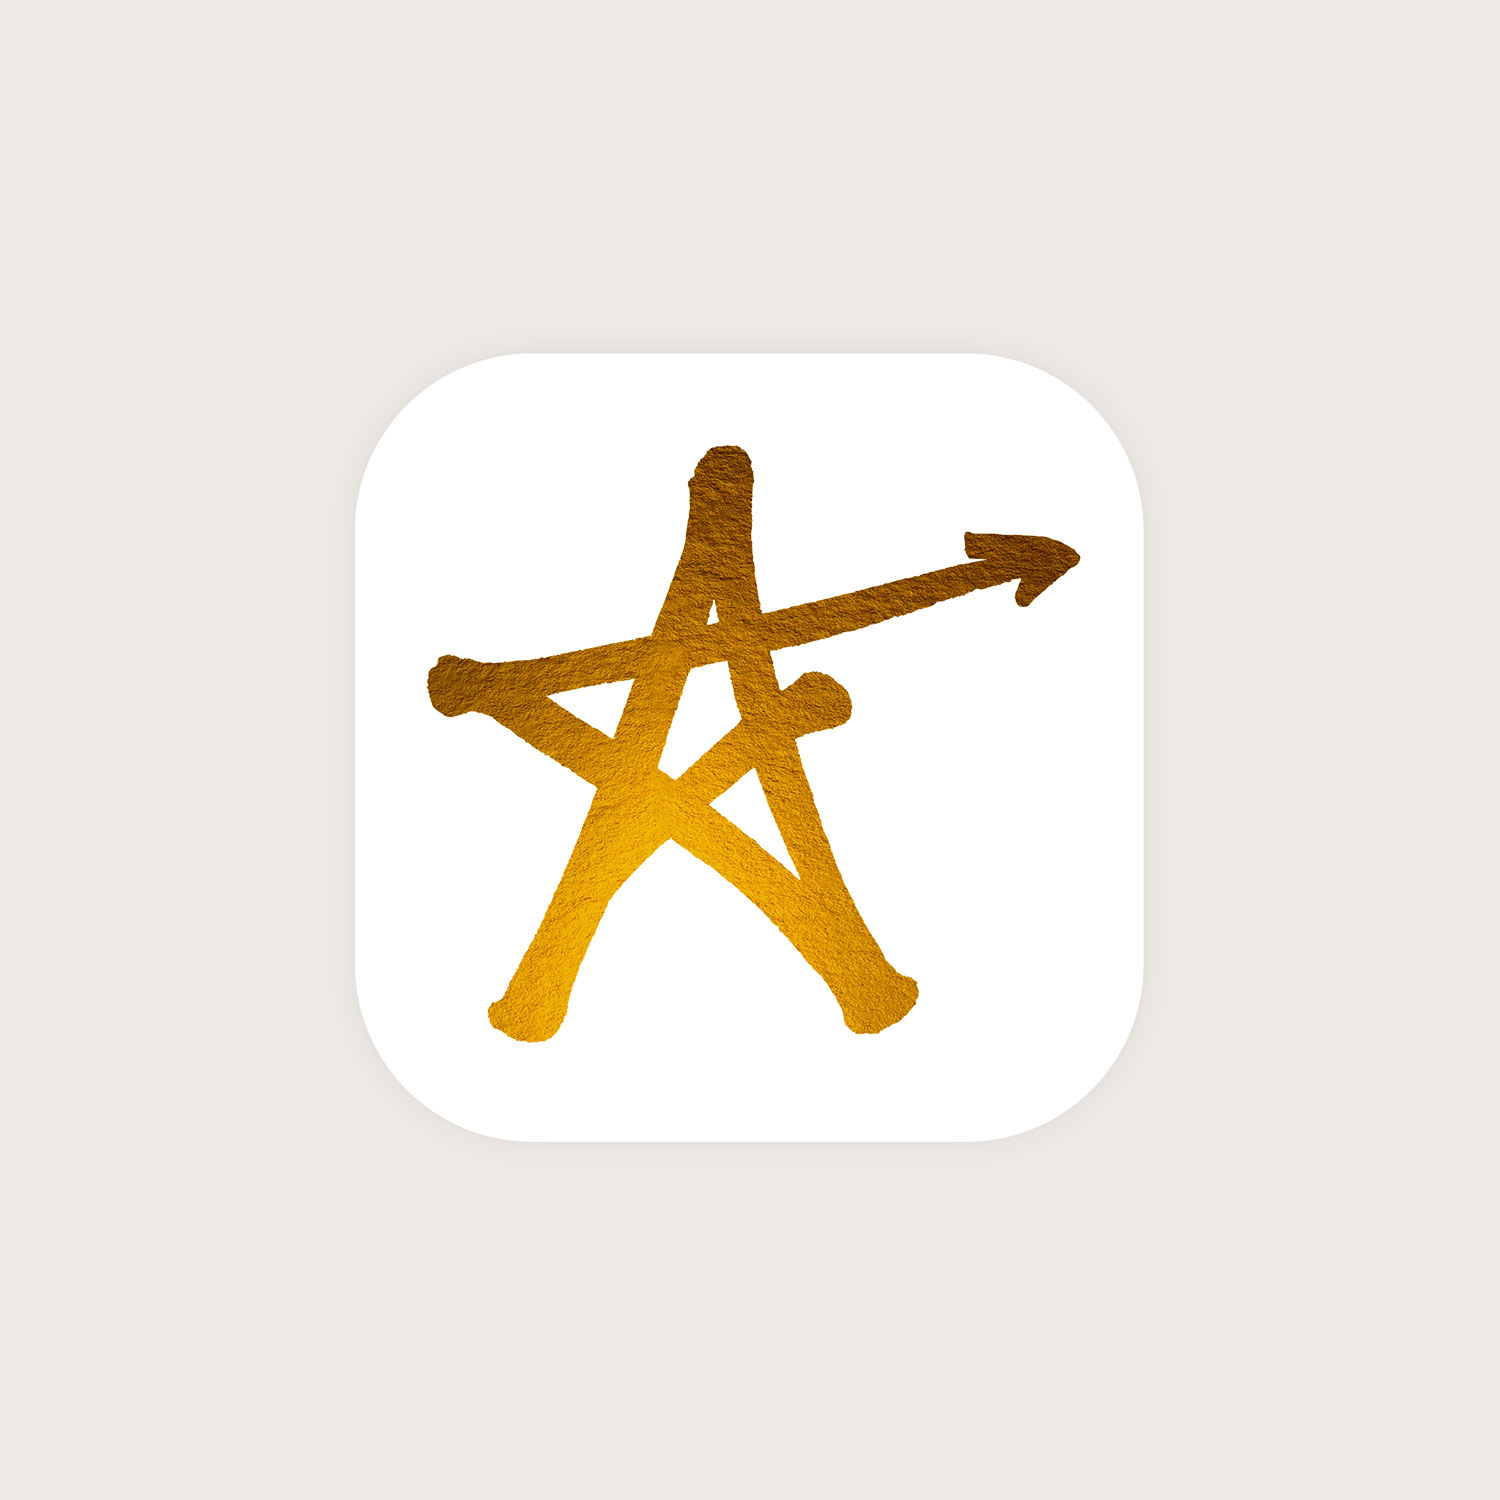 Under the Stars logo symbol – Design by Ian Whalley